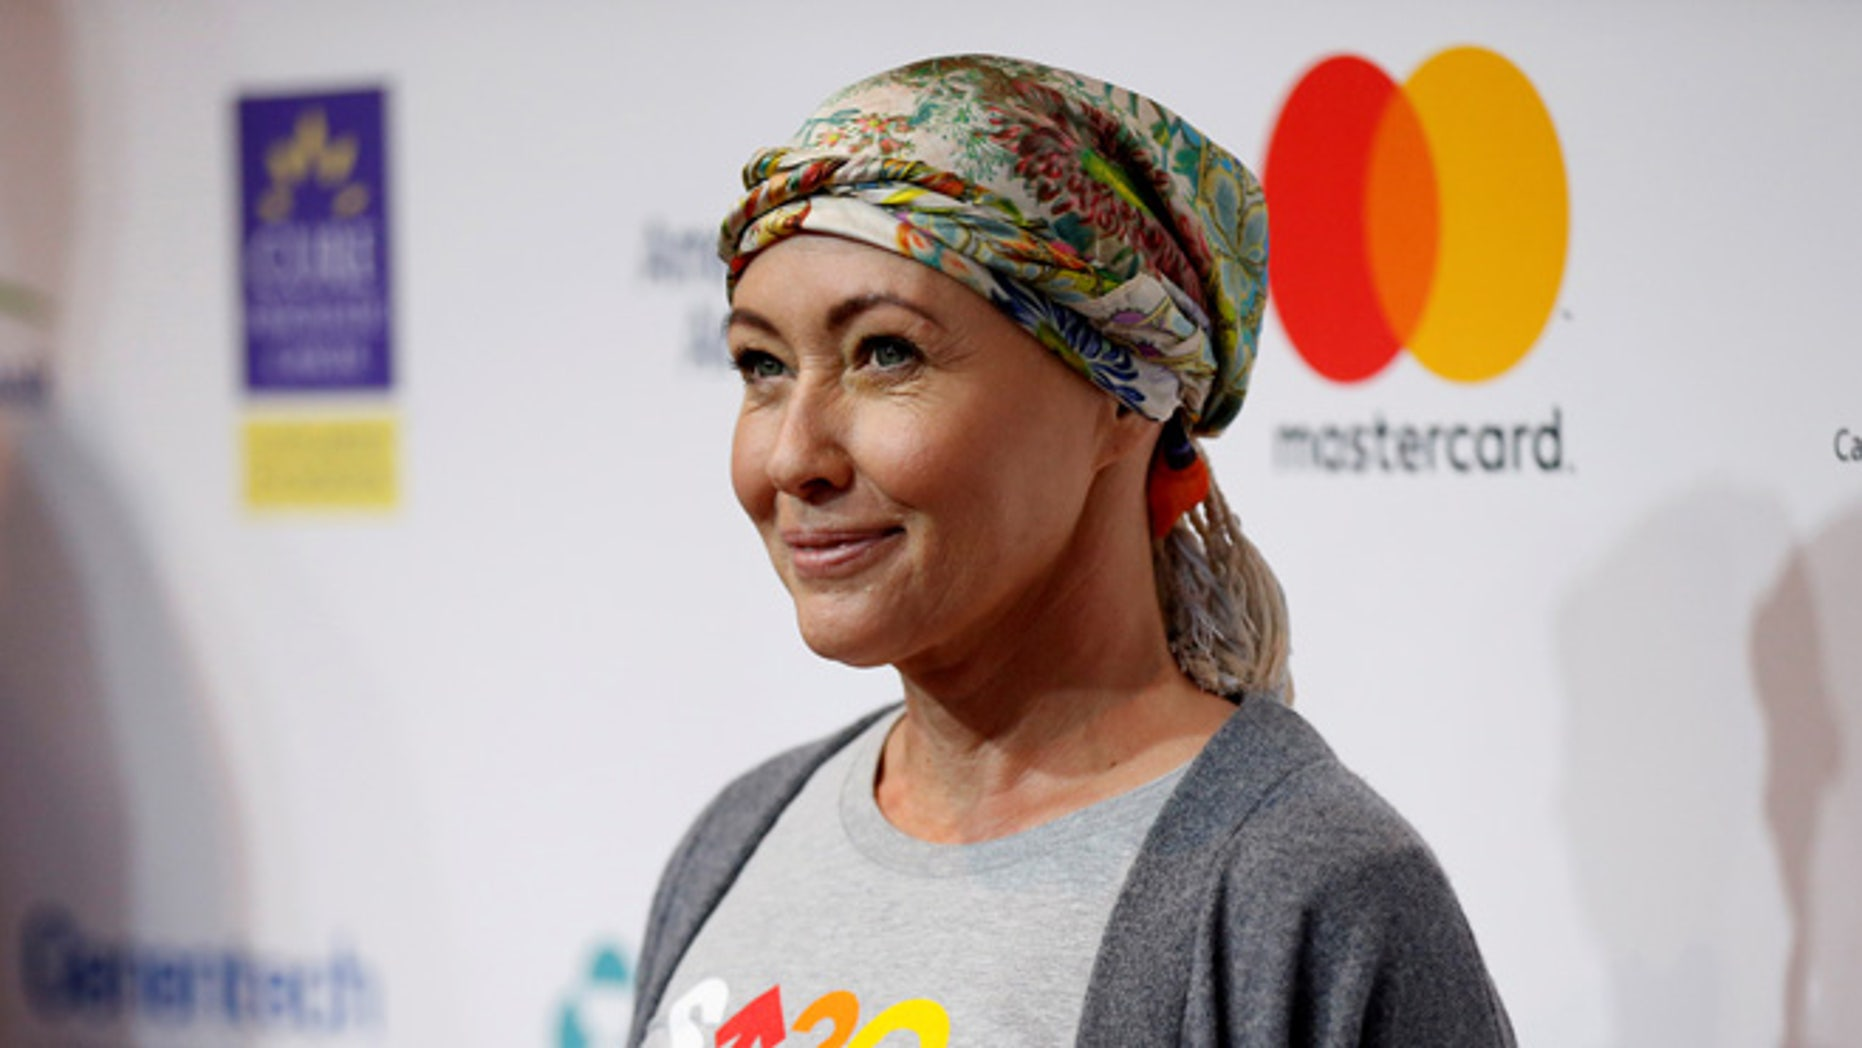 Actress Shannen Doherty arrives for a Stand Up To Cancer (SU2C) fundraising event at Walt Disney Concert Hall in Los Angeles, California U.S., September 9, 2016.   REUTERS/Mario Anzuoni - RTSN2EZ